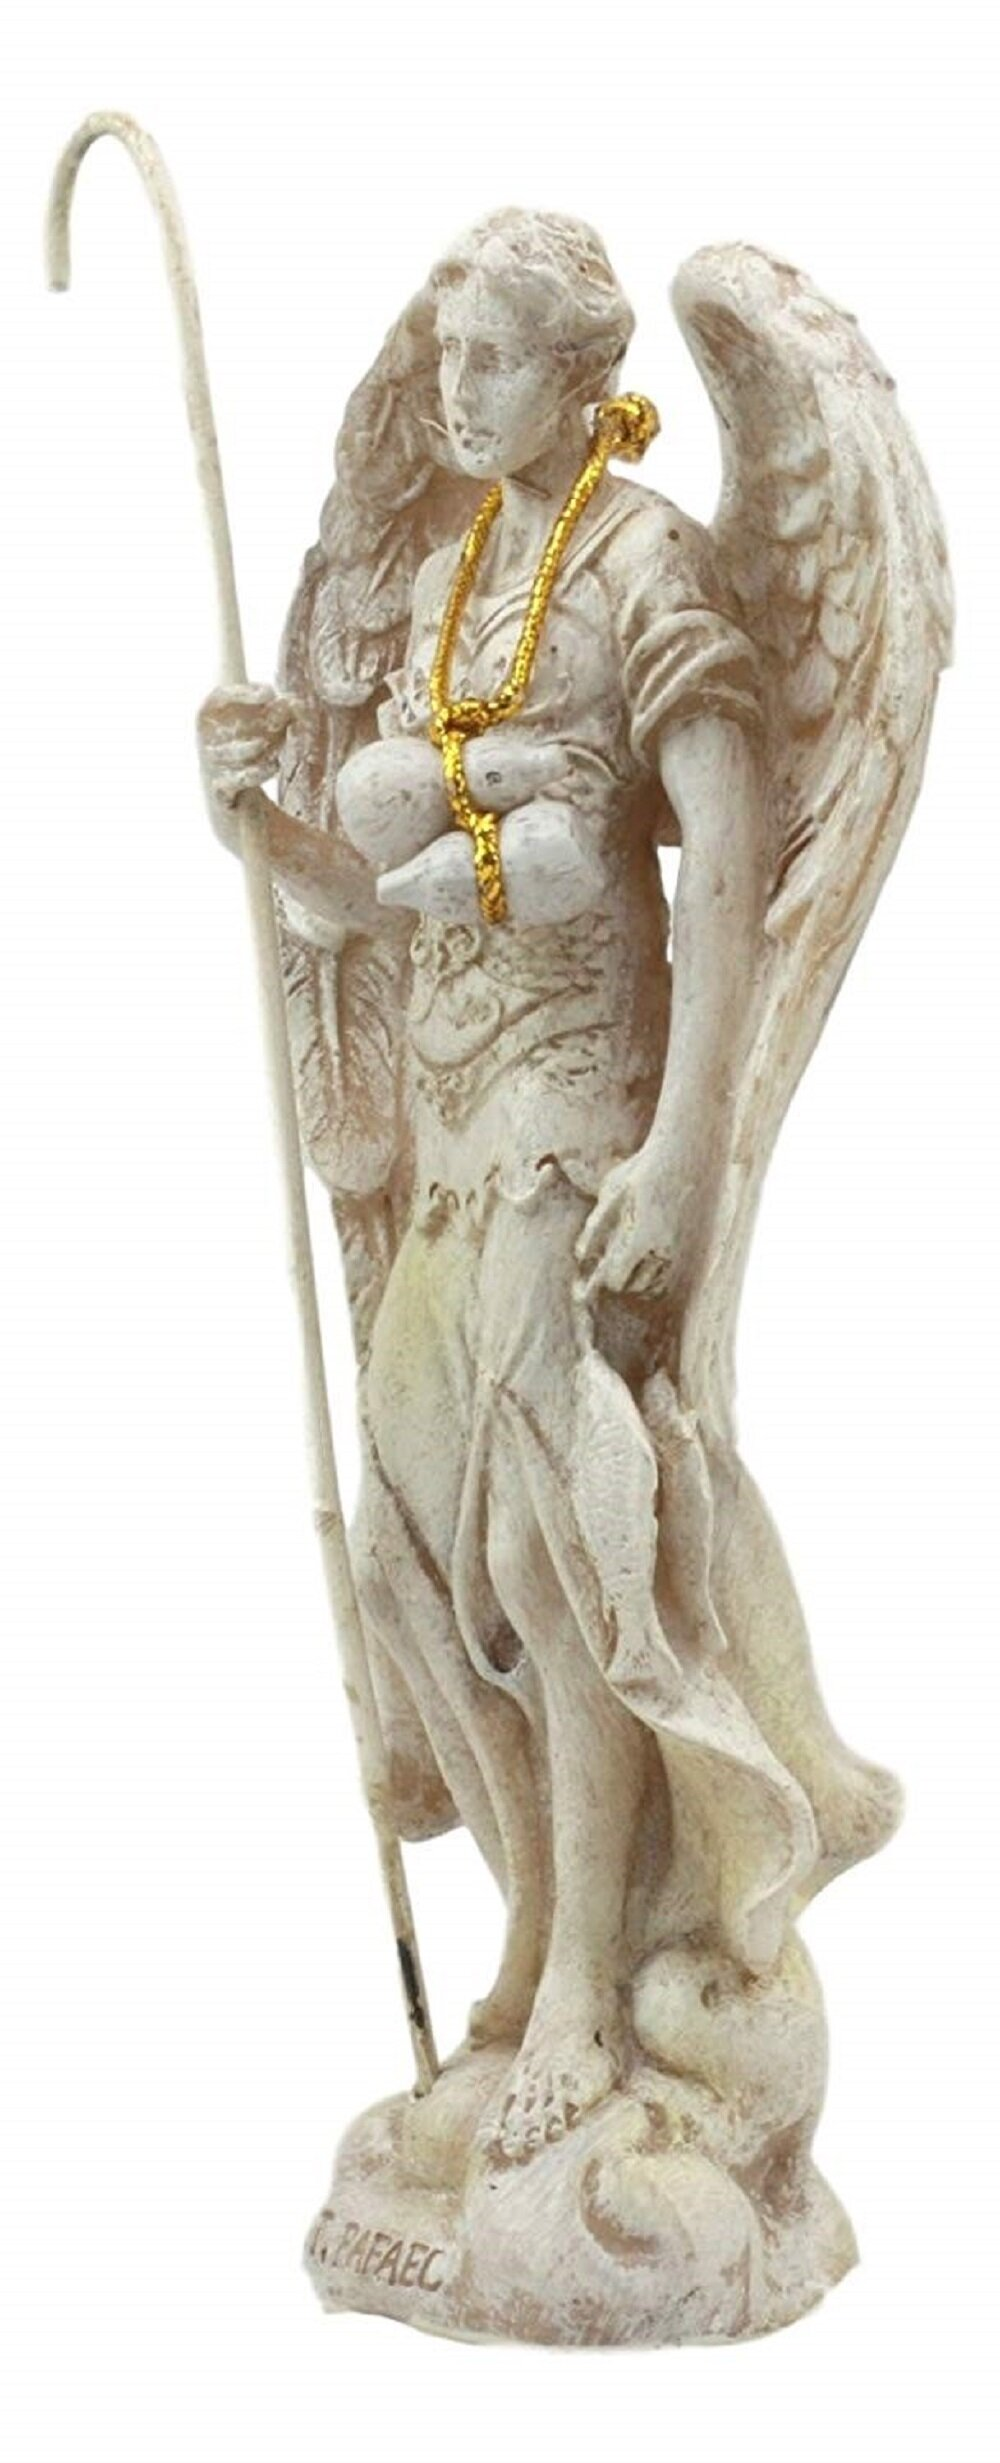 Astoria Grand Tafolla Colored Holy Archangel Saint Raphael With Staff And Annointing Oil Figurine Wayfair